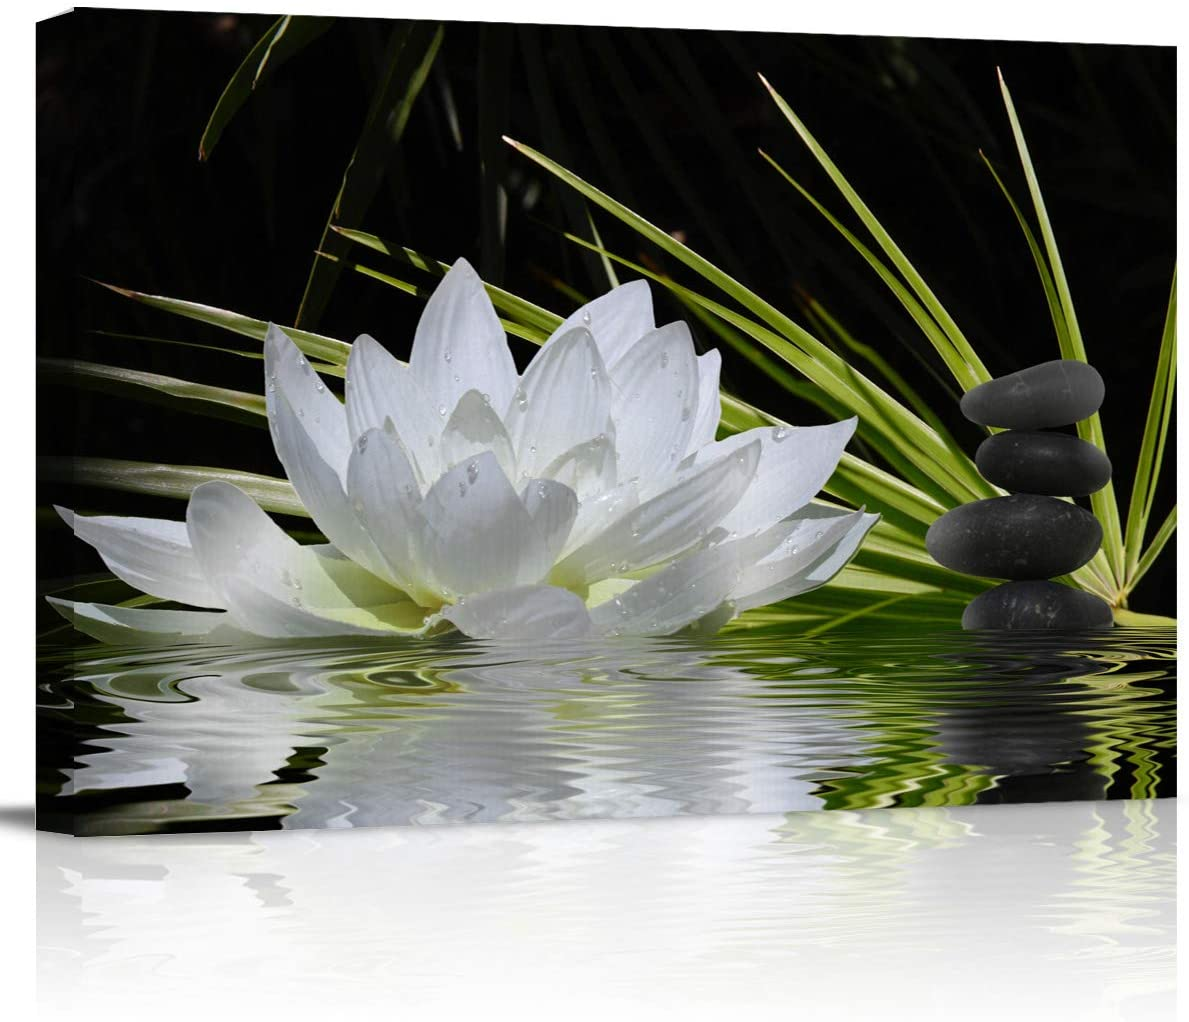 Canvas Wall Art - White Lotus and Black Zen Stones Picture - Modern Wall Decor Gallery Canvas Wraps Giclee Print Stretched and Framed Ready to Hang - 12